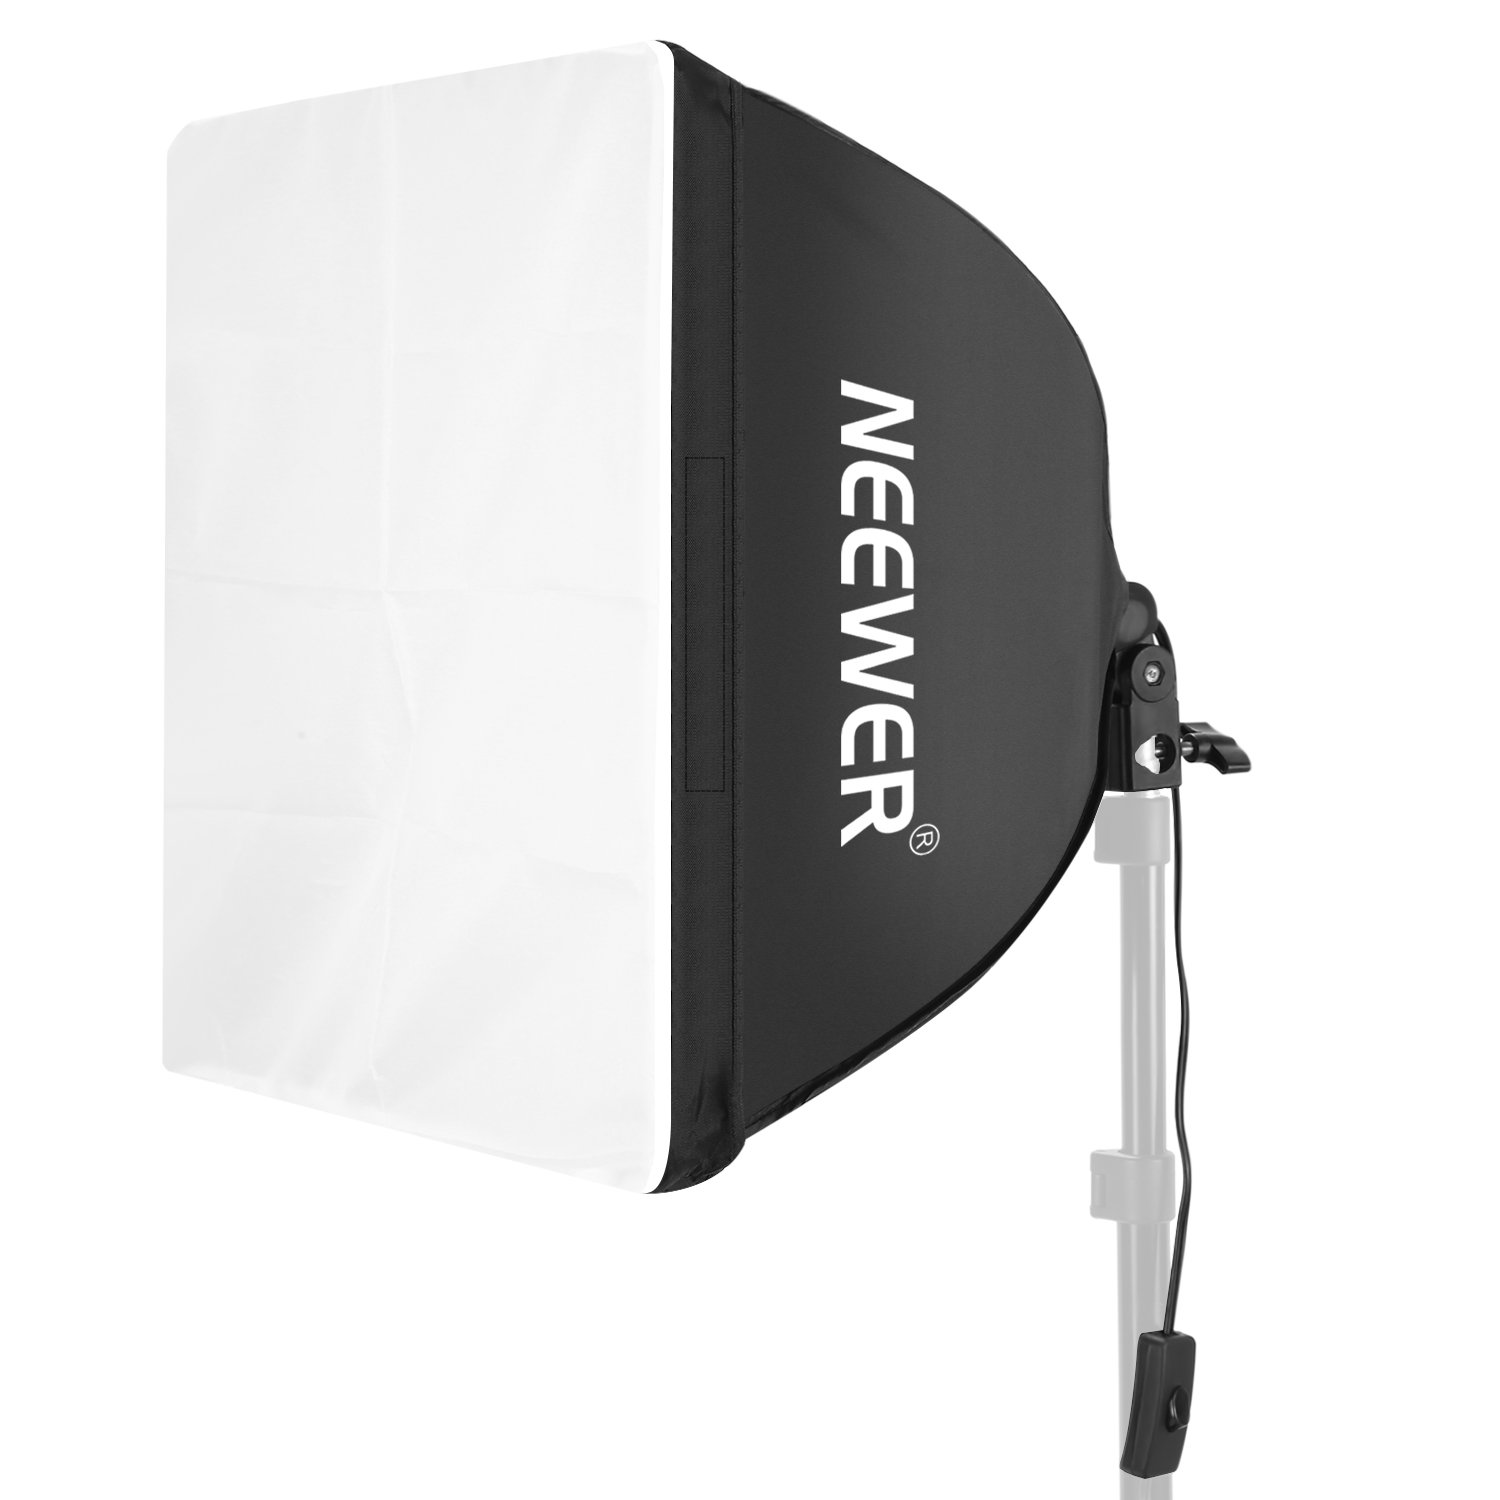 Neewer 24 x 24 inches/60 x 60 Centimeters Wired Studio Softbox Diffuser with E27 Socket for Fluorescent Bulb Lamp for Portrait Video Photography (Bulb Not Included) 10093052